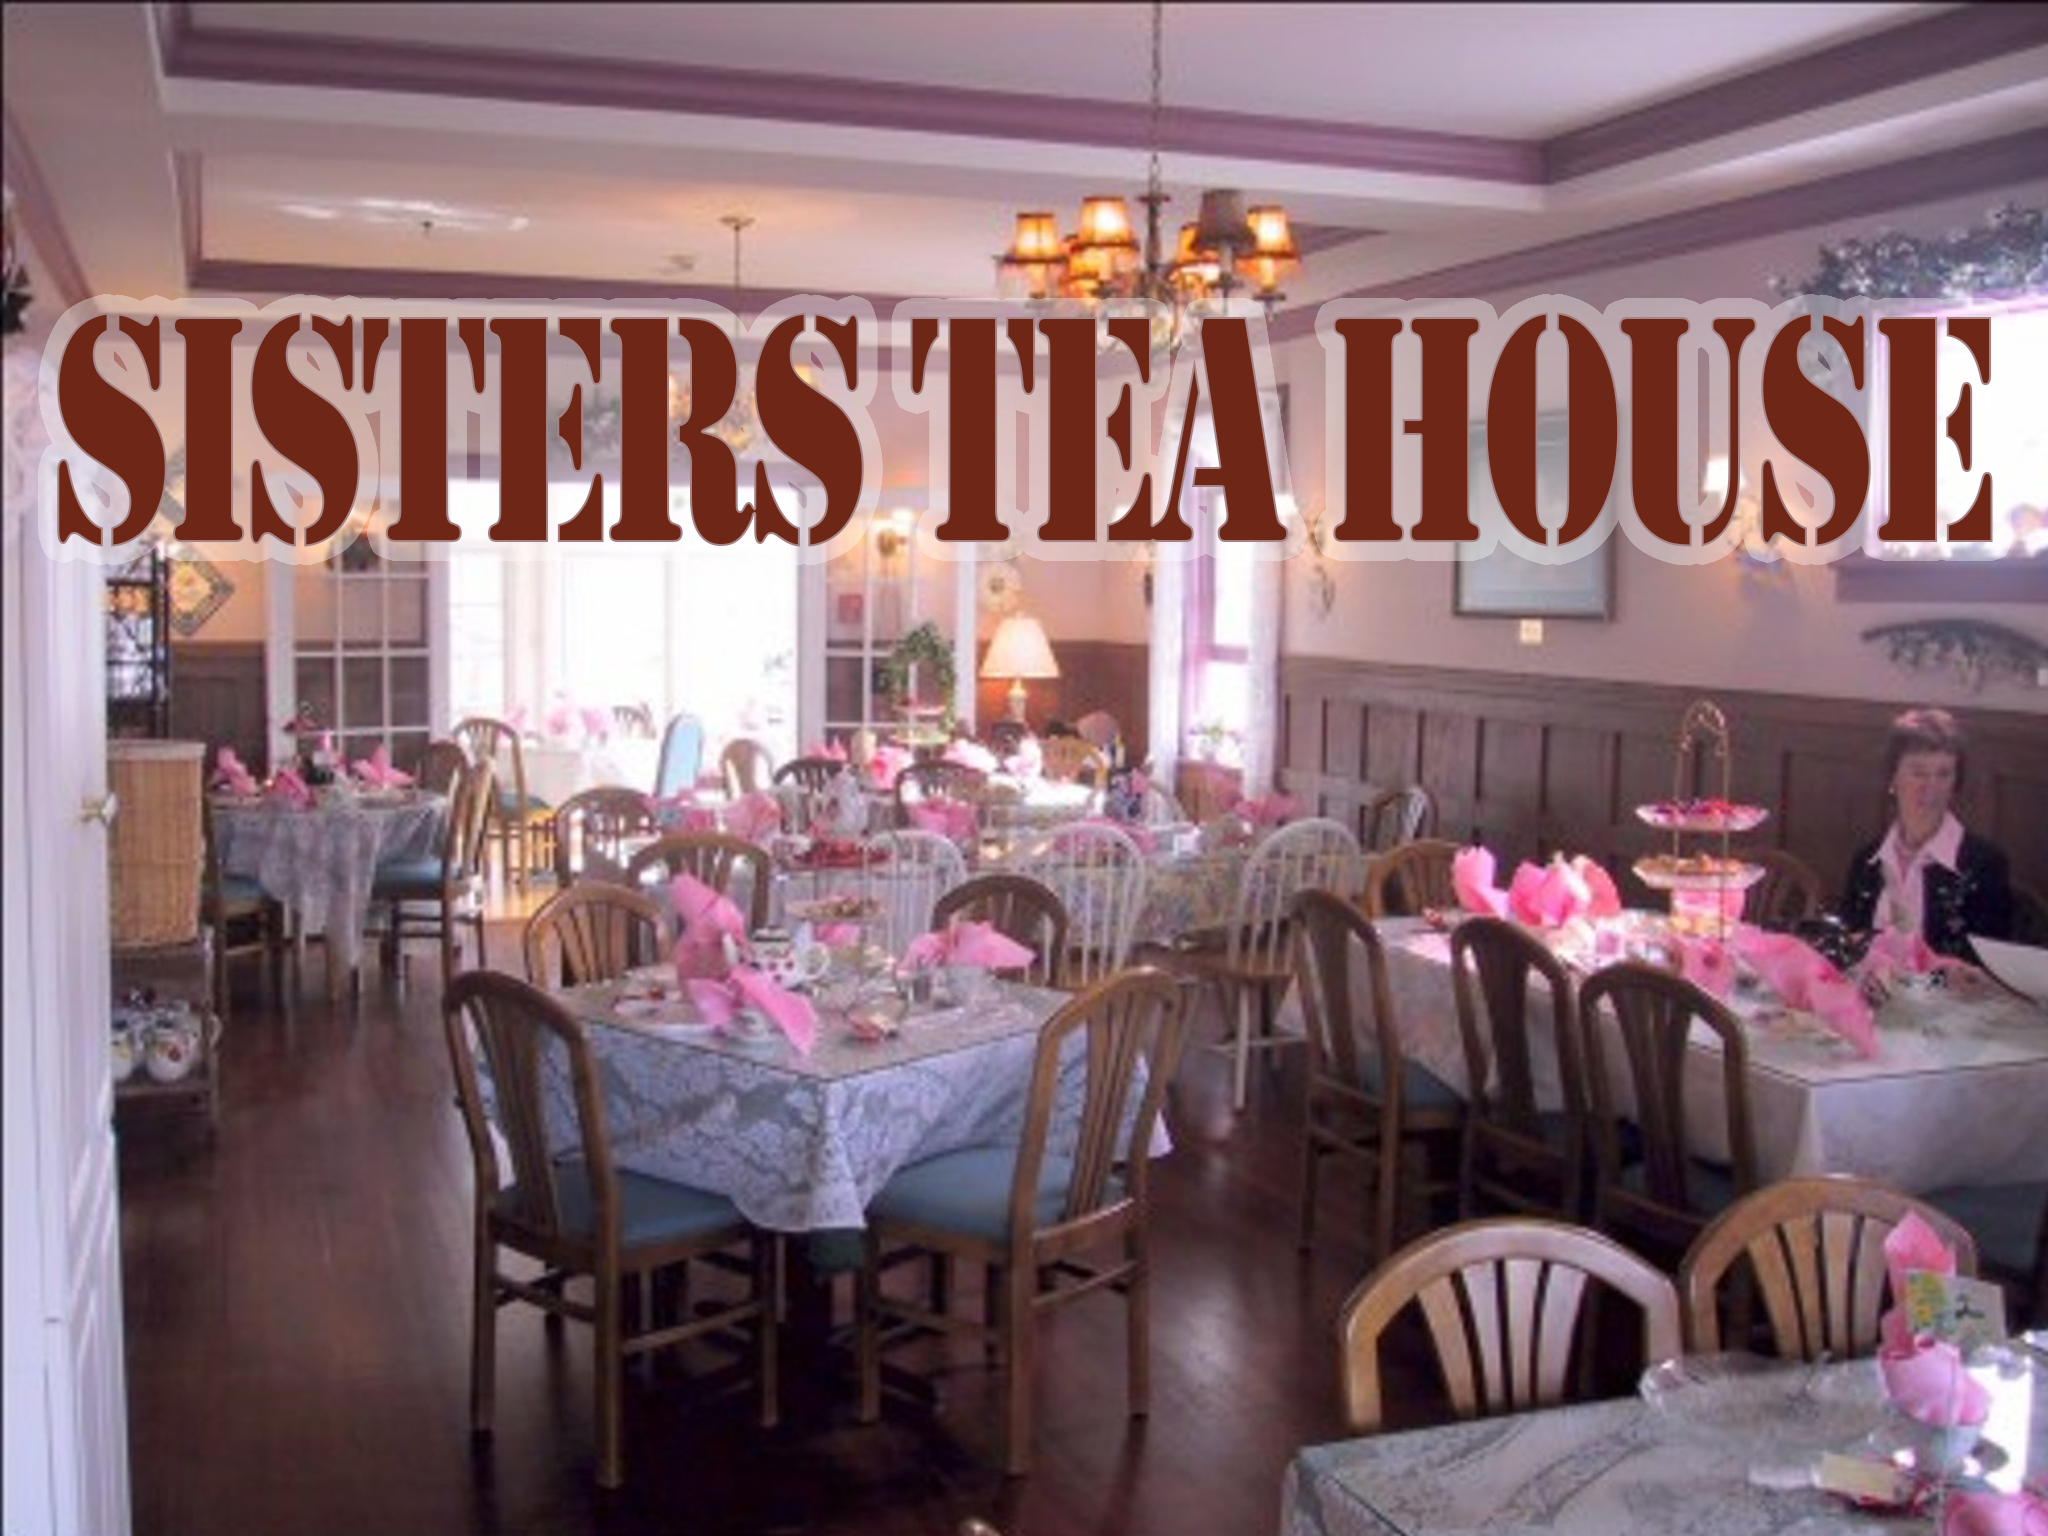 SistersTeaHouseGraphic